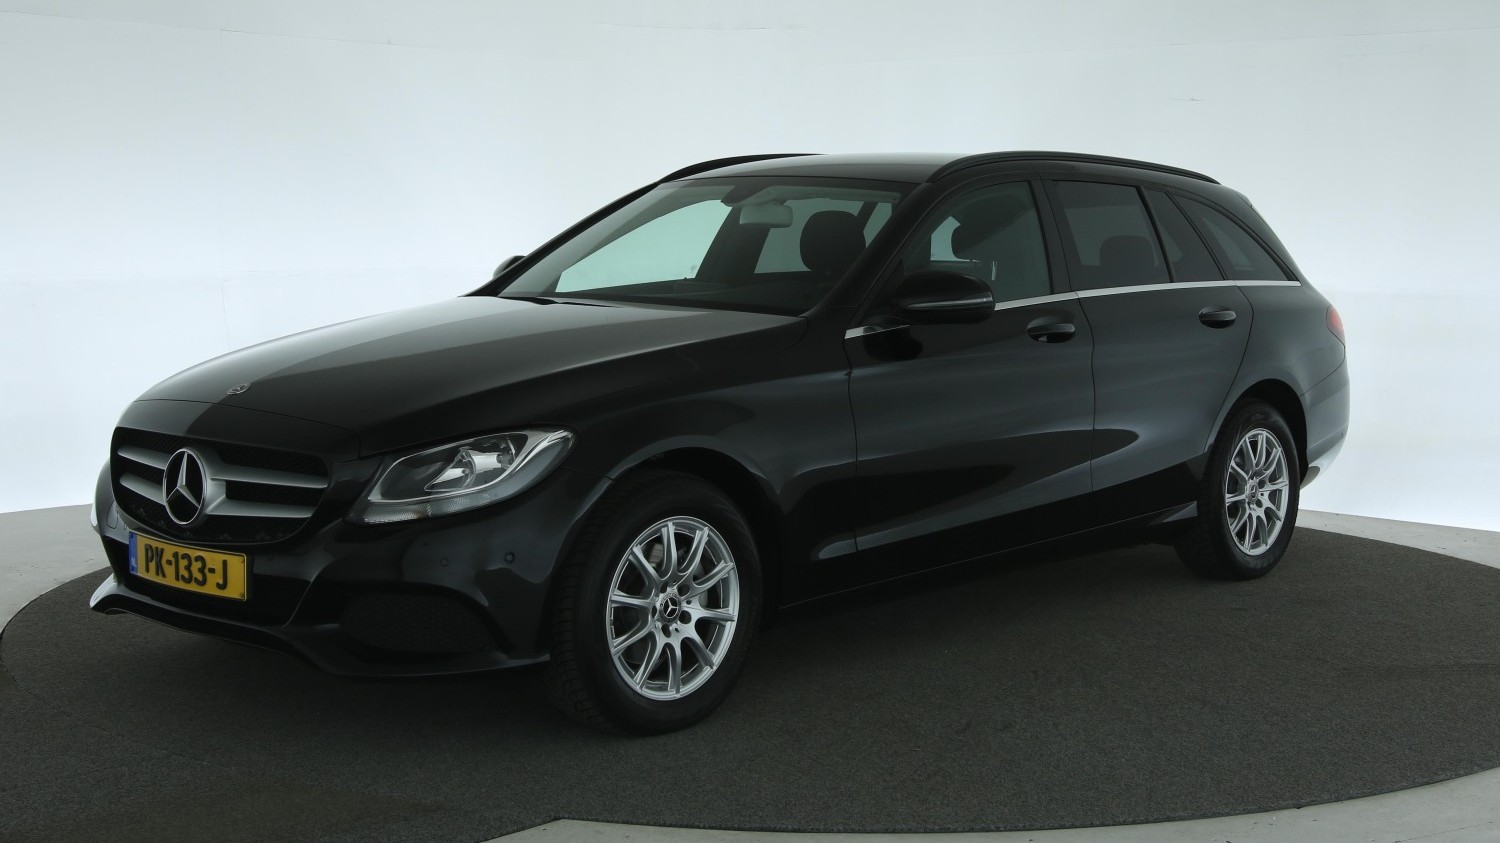 Mercedes-Benz C-klasse Station 2017 PK-133-J 1